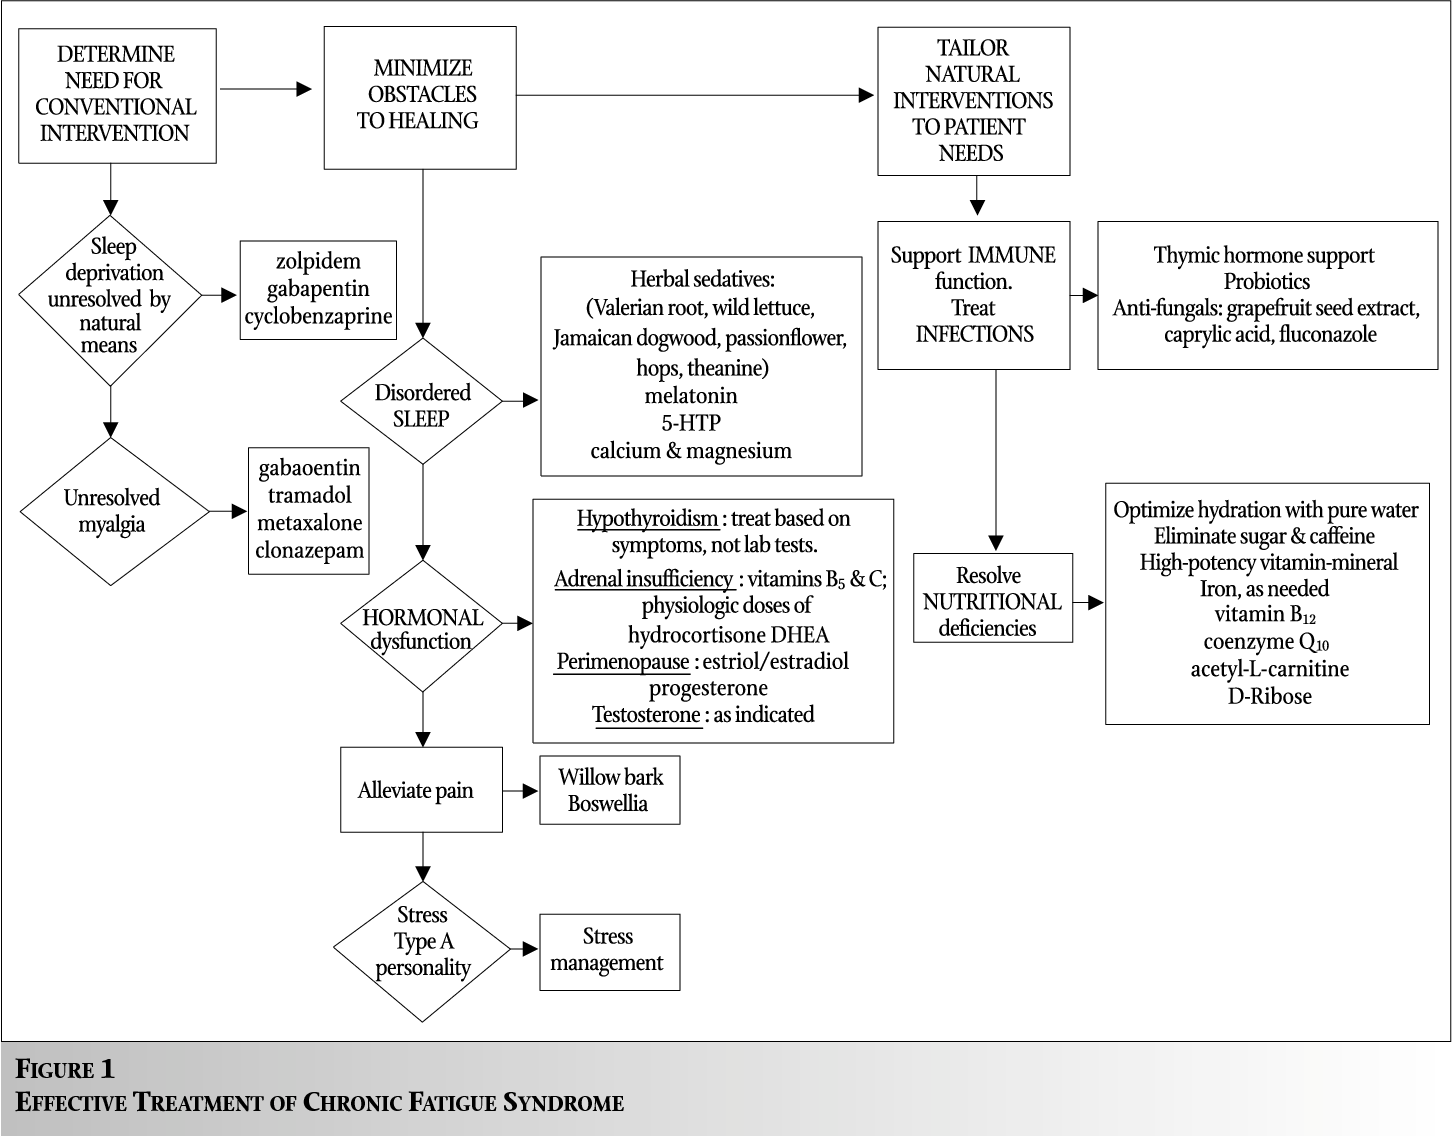 Figure 1 from EFFECTIVE TREATMENT OF CHRONIC FATIGUE